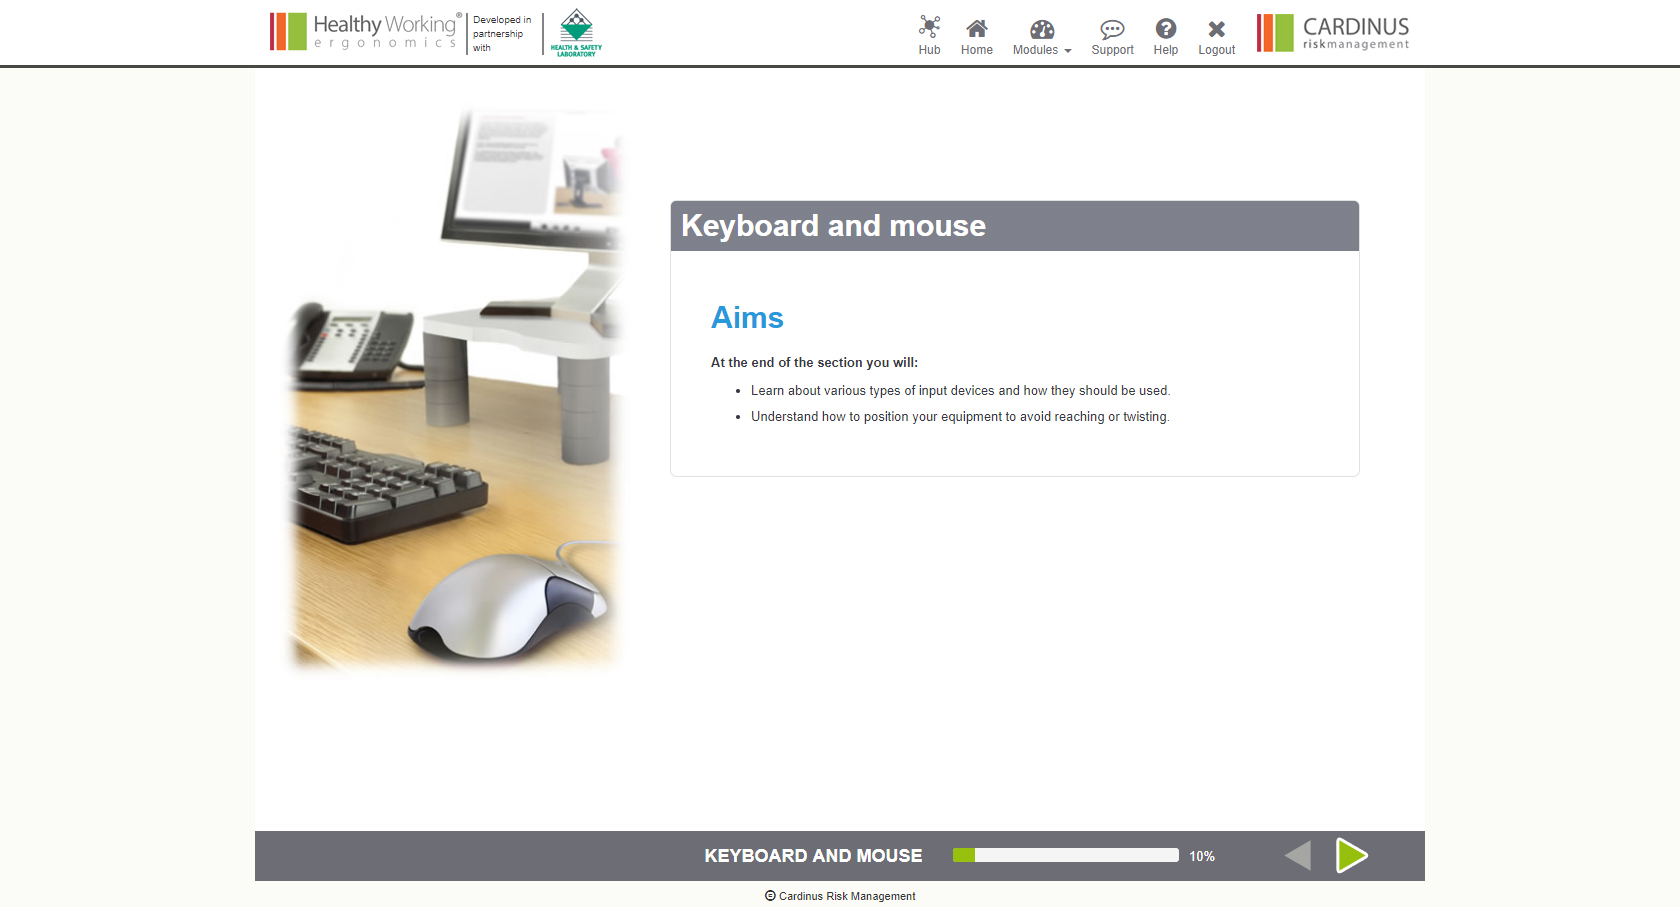 Keyboard and Mouse, Aims | Healthy Working